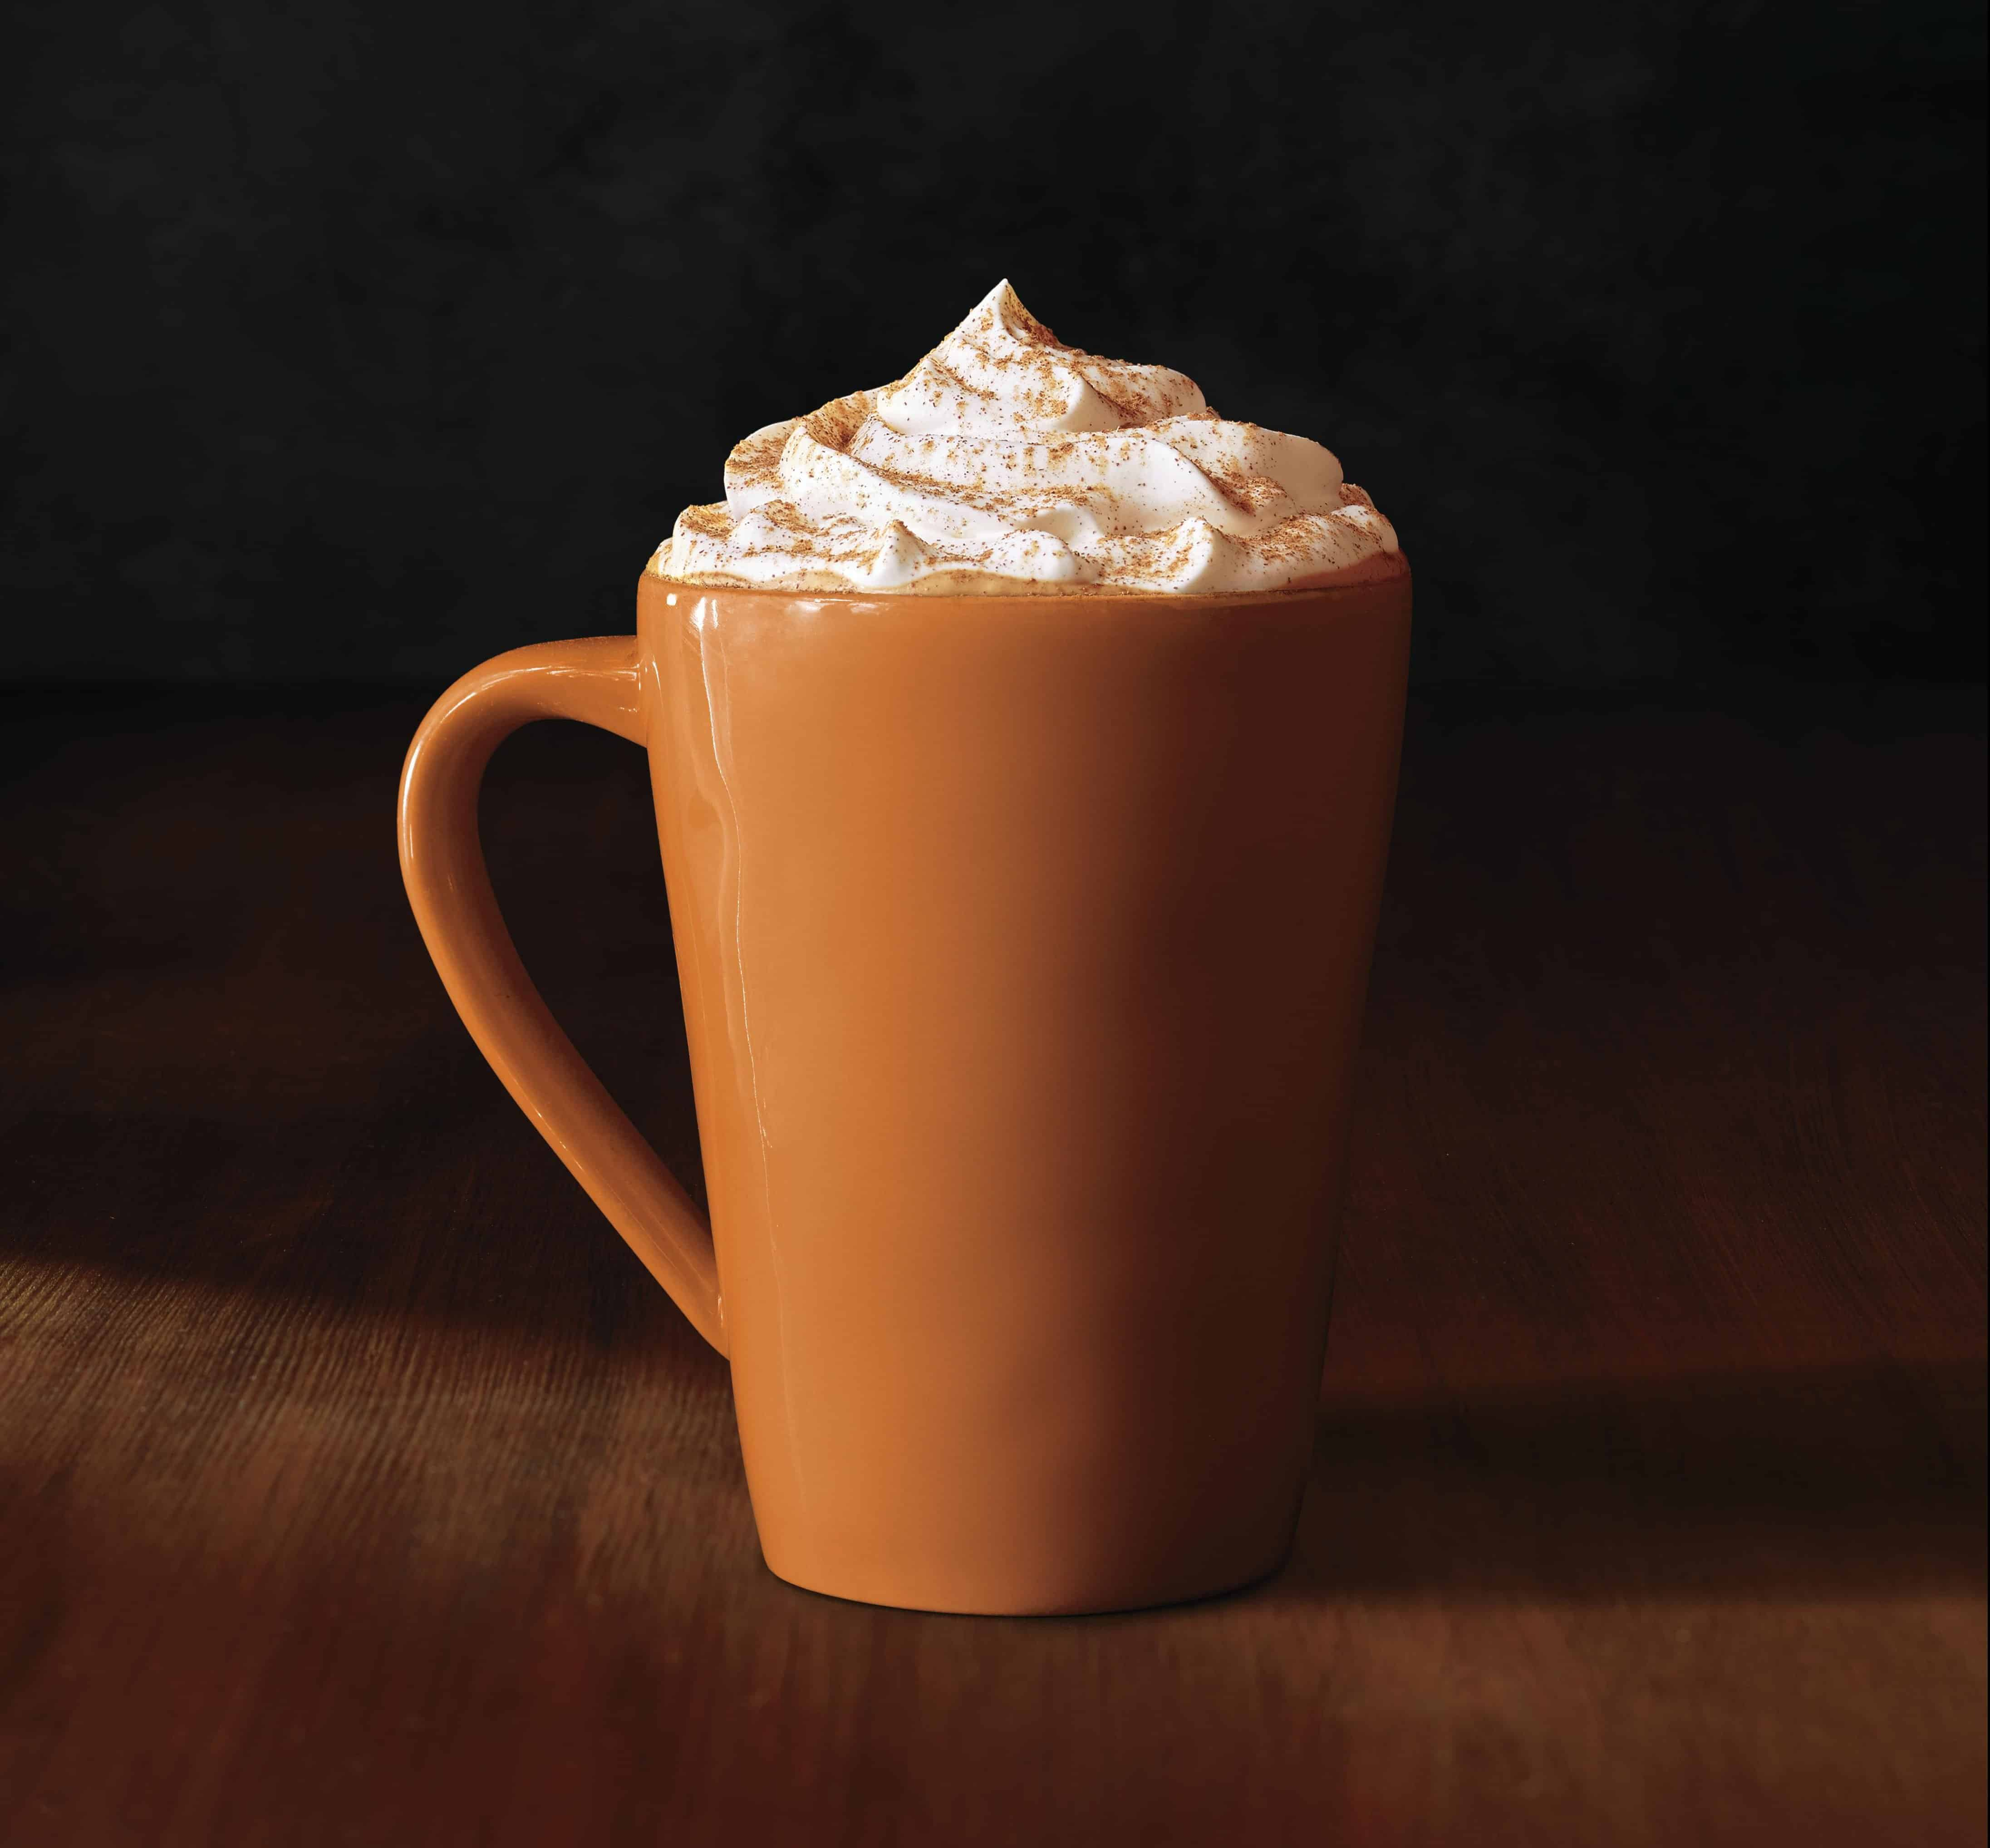 Is Starbucks Pumpkin Spice Latte Gluten Free The Gluten